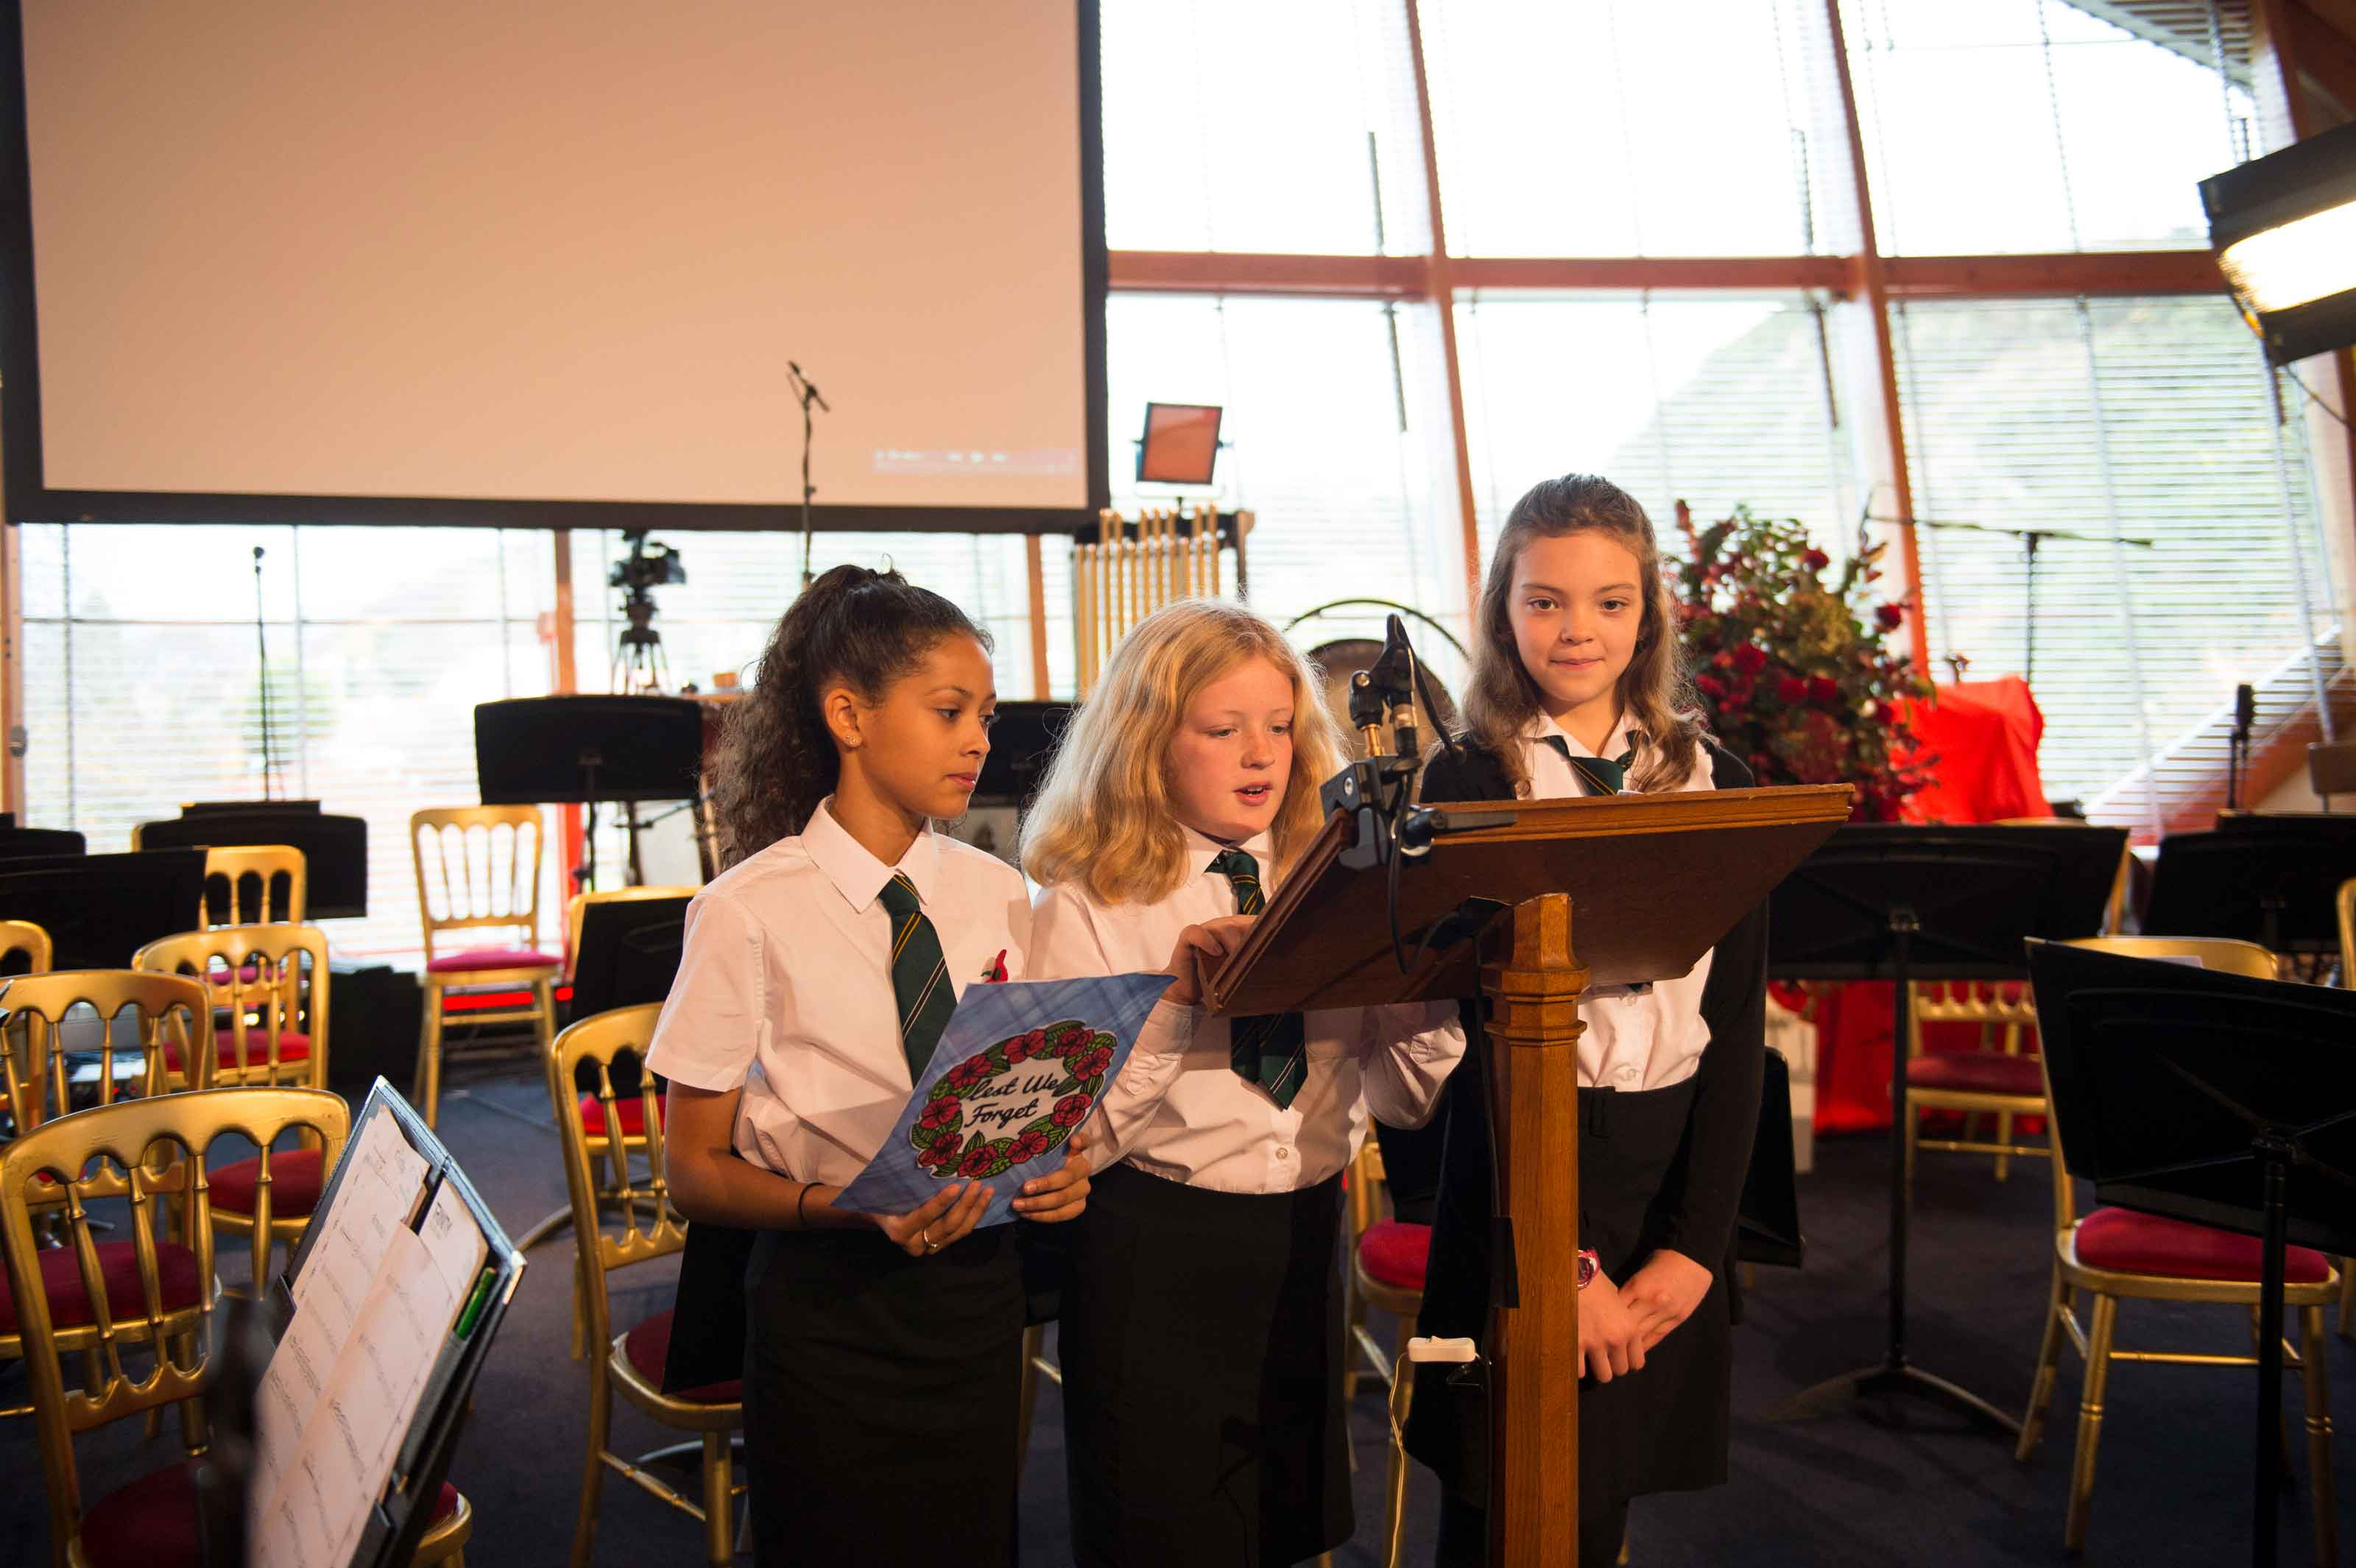 Pupils recite poetry at the Concert for Cooperation at Craiglockhart